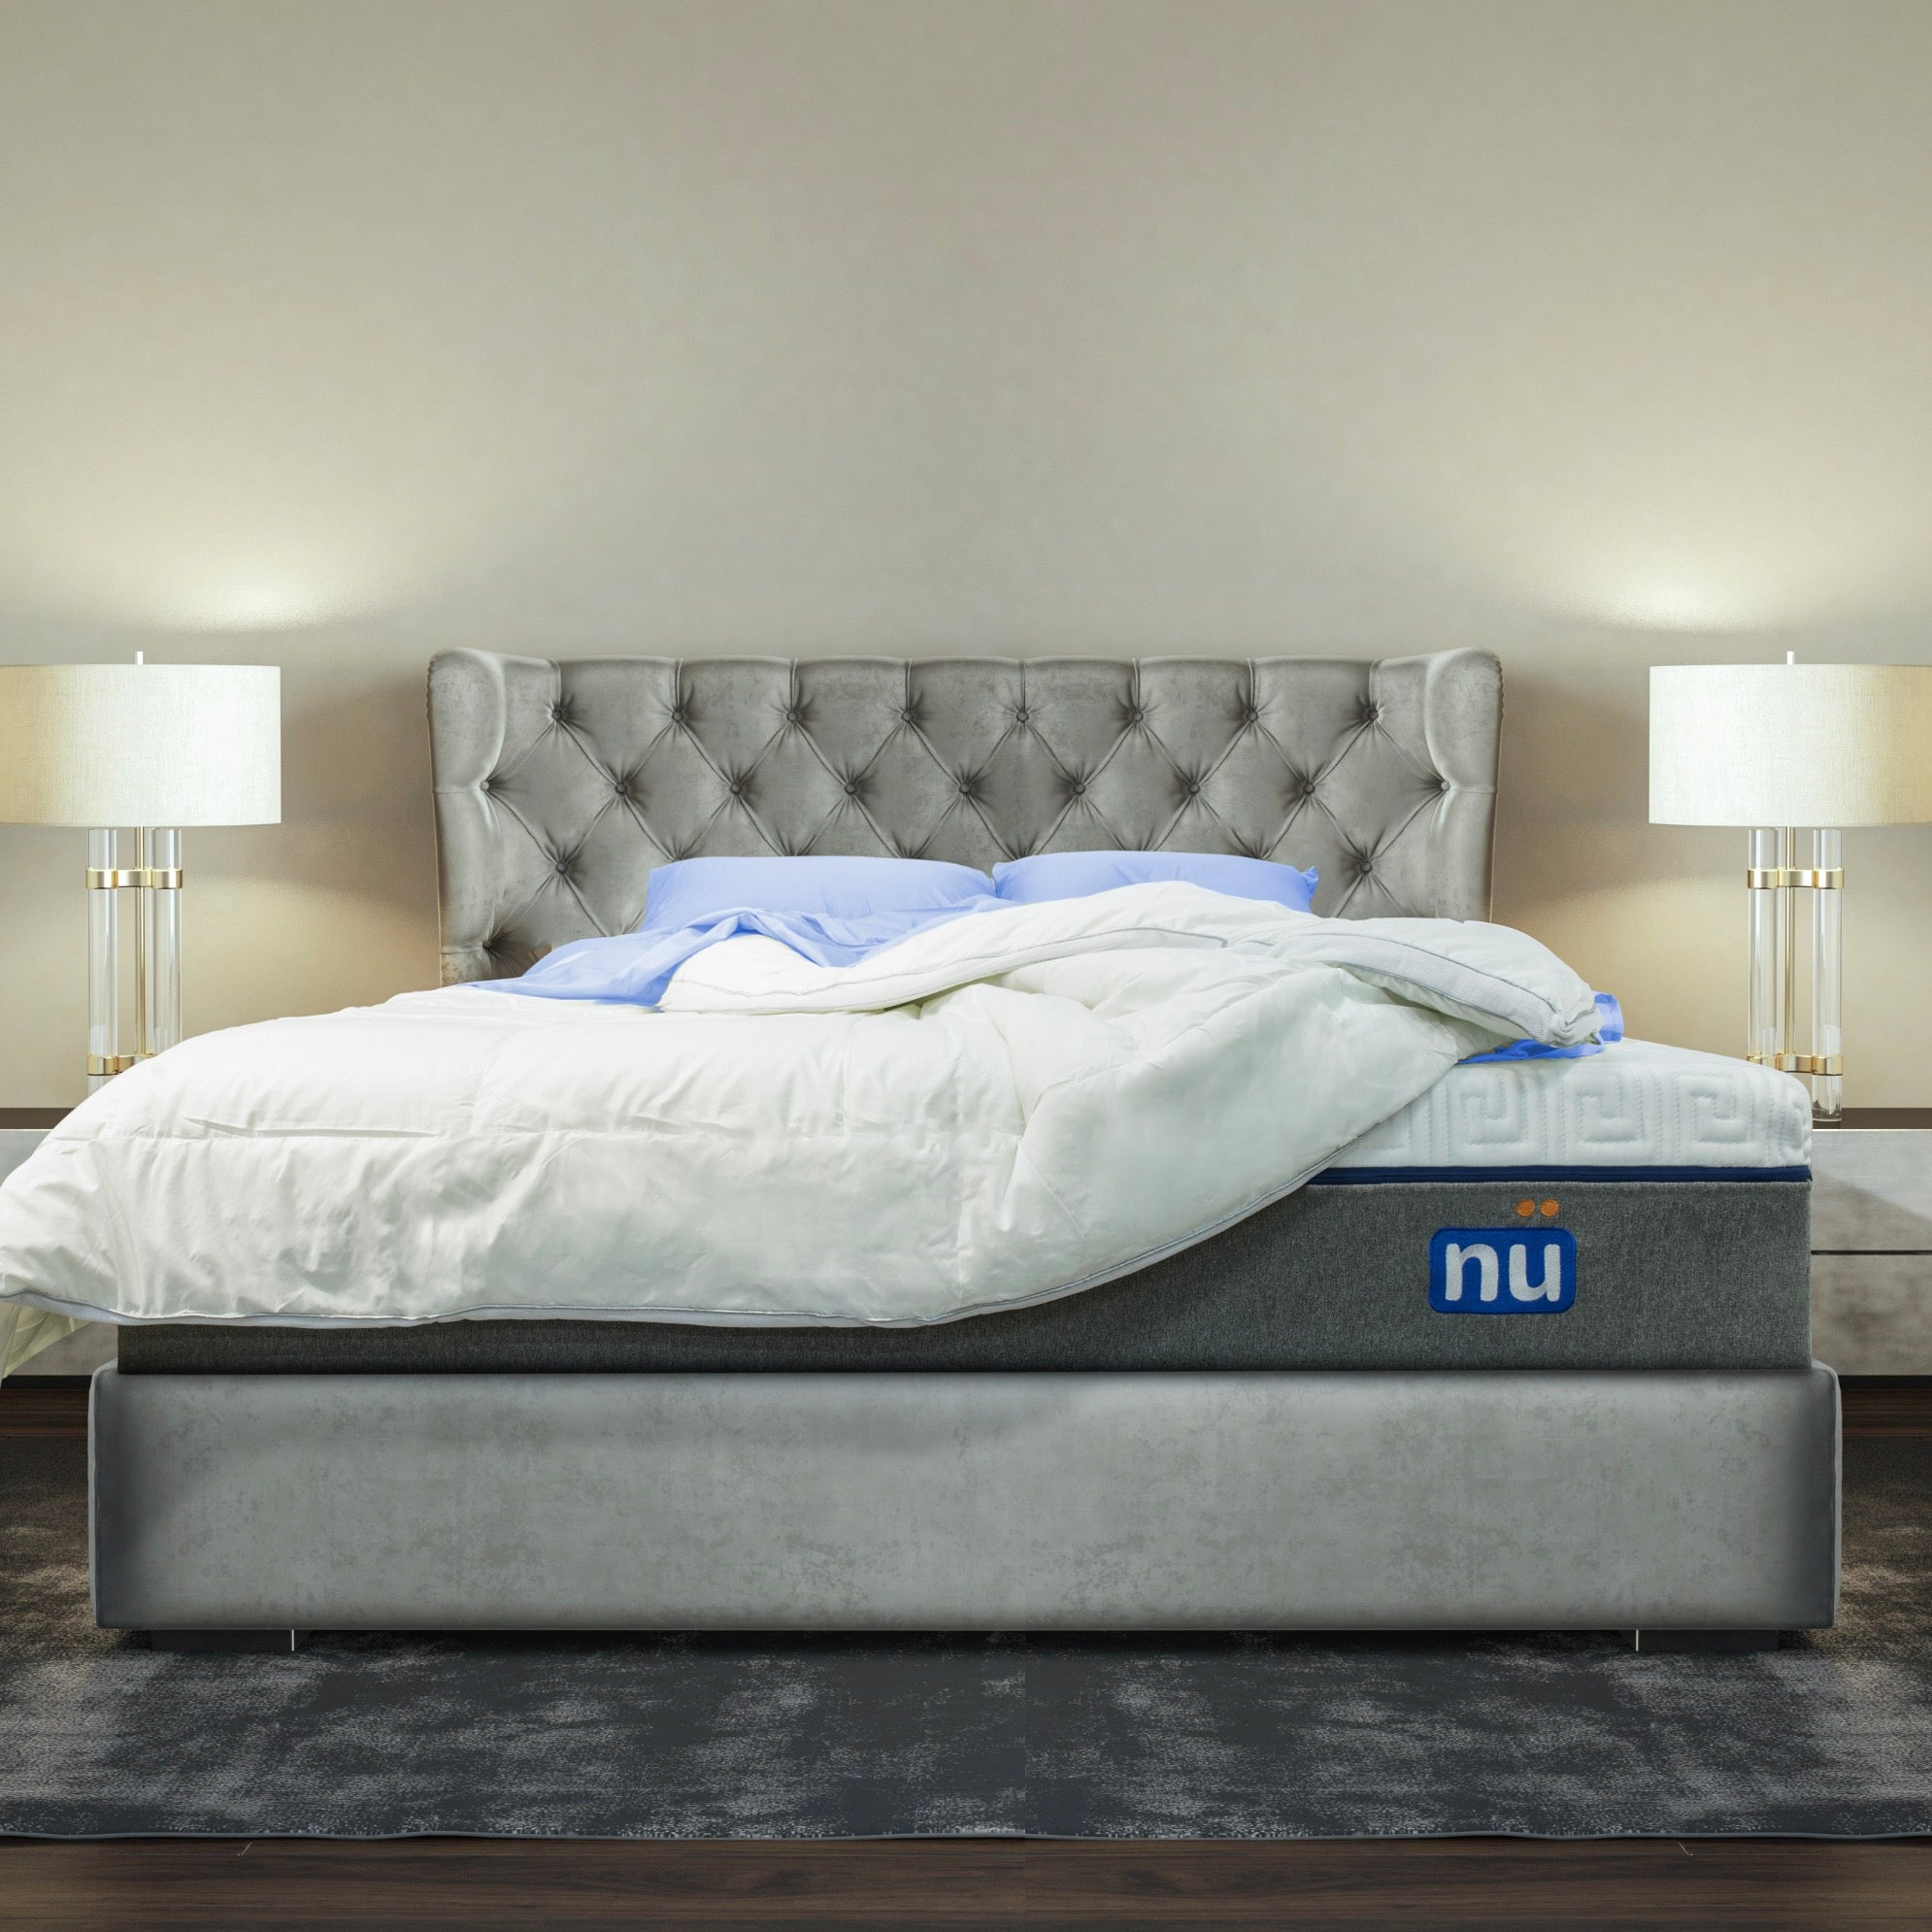 The nü Mattress